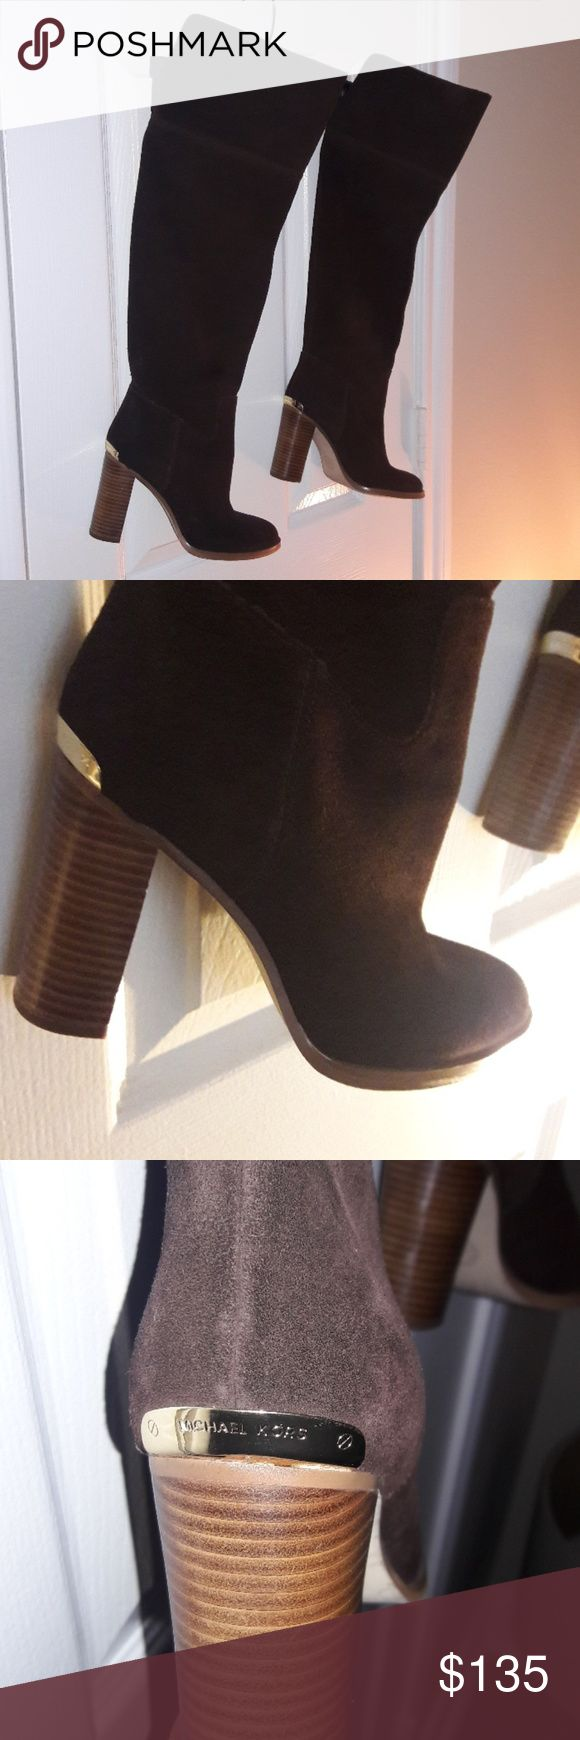 Knee High MK Boots Gently Used Knee High Brown Suede Boots Sz 6.5 (M) Michael Kors Shoes Heeled Boots